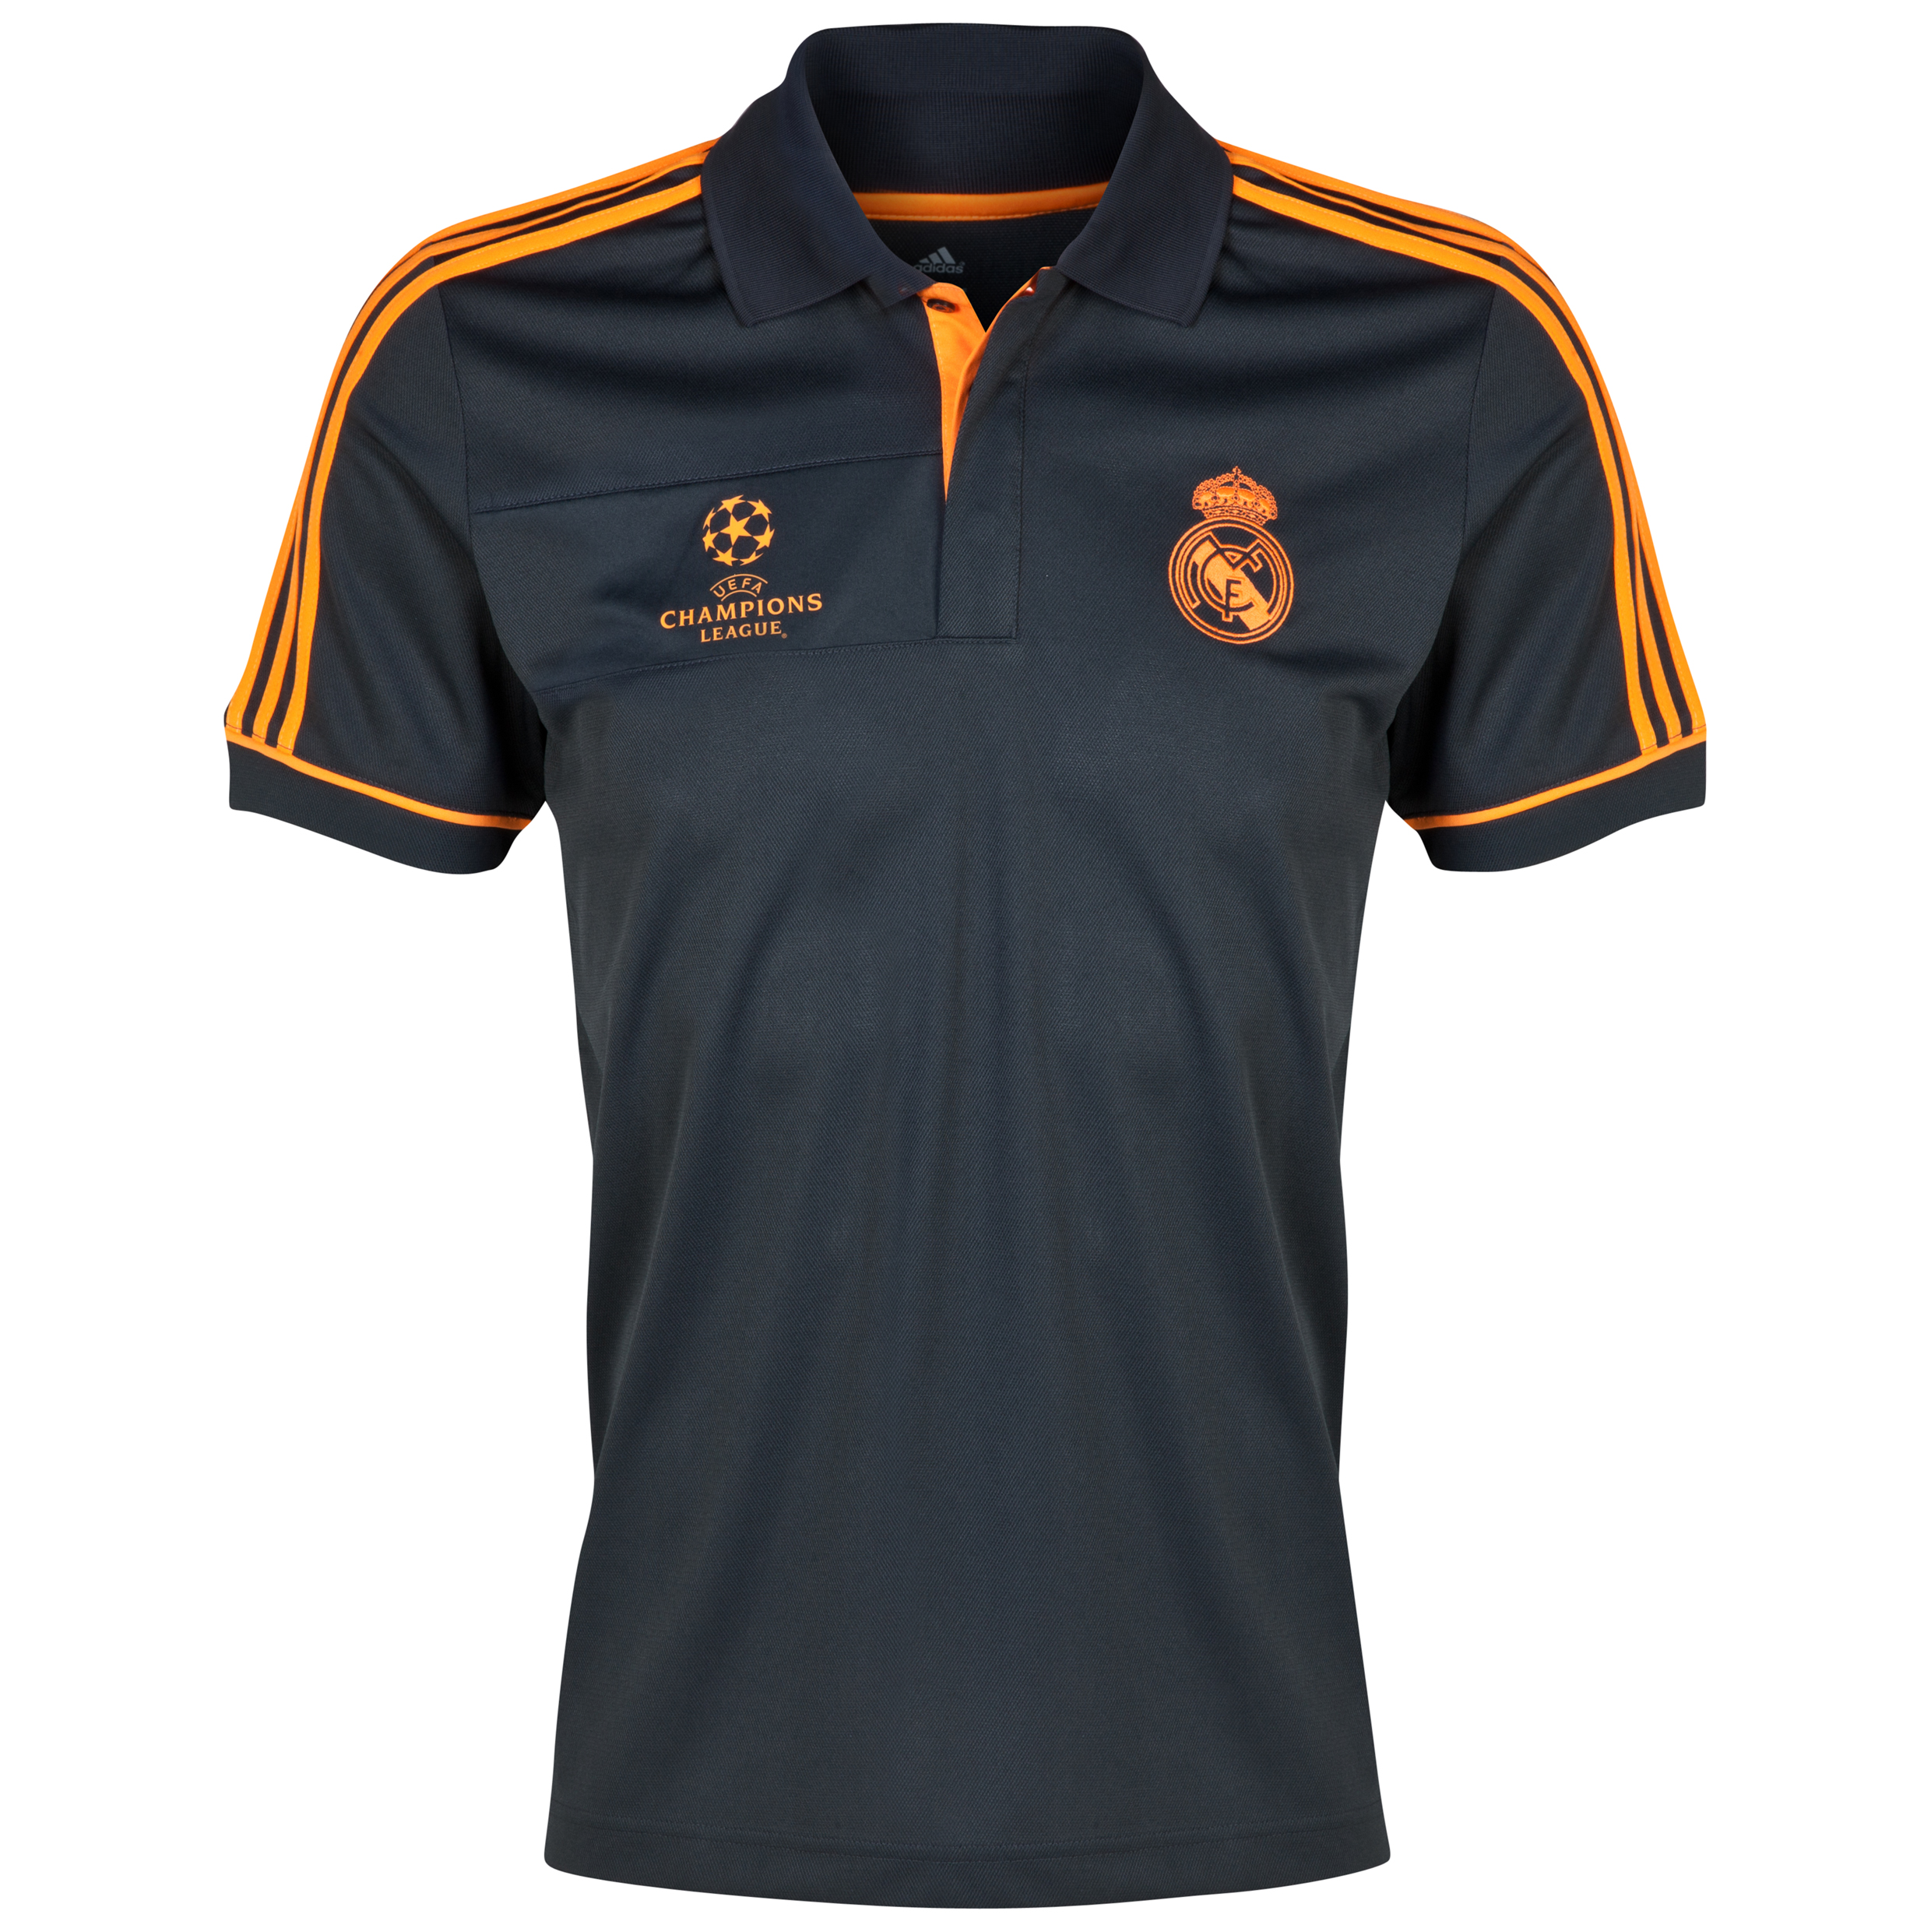 Real Madrid UCL Training Polo - Dark Shale/Zest Dk Blue